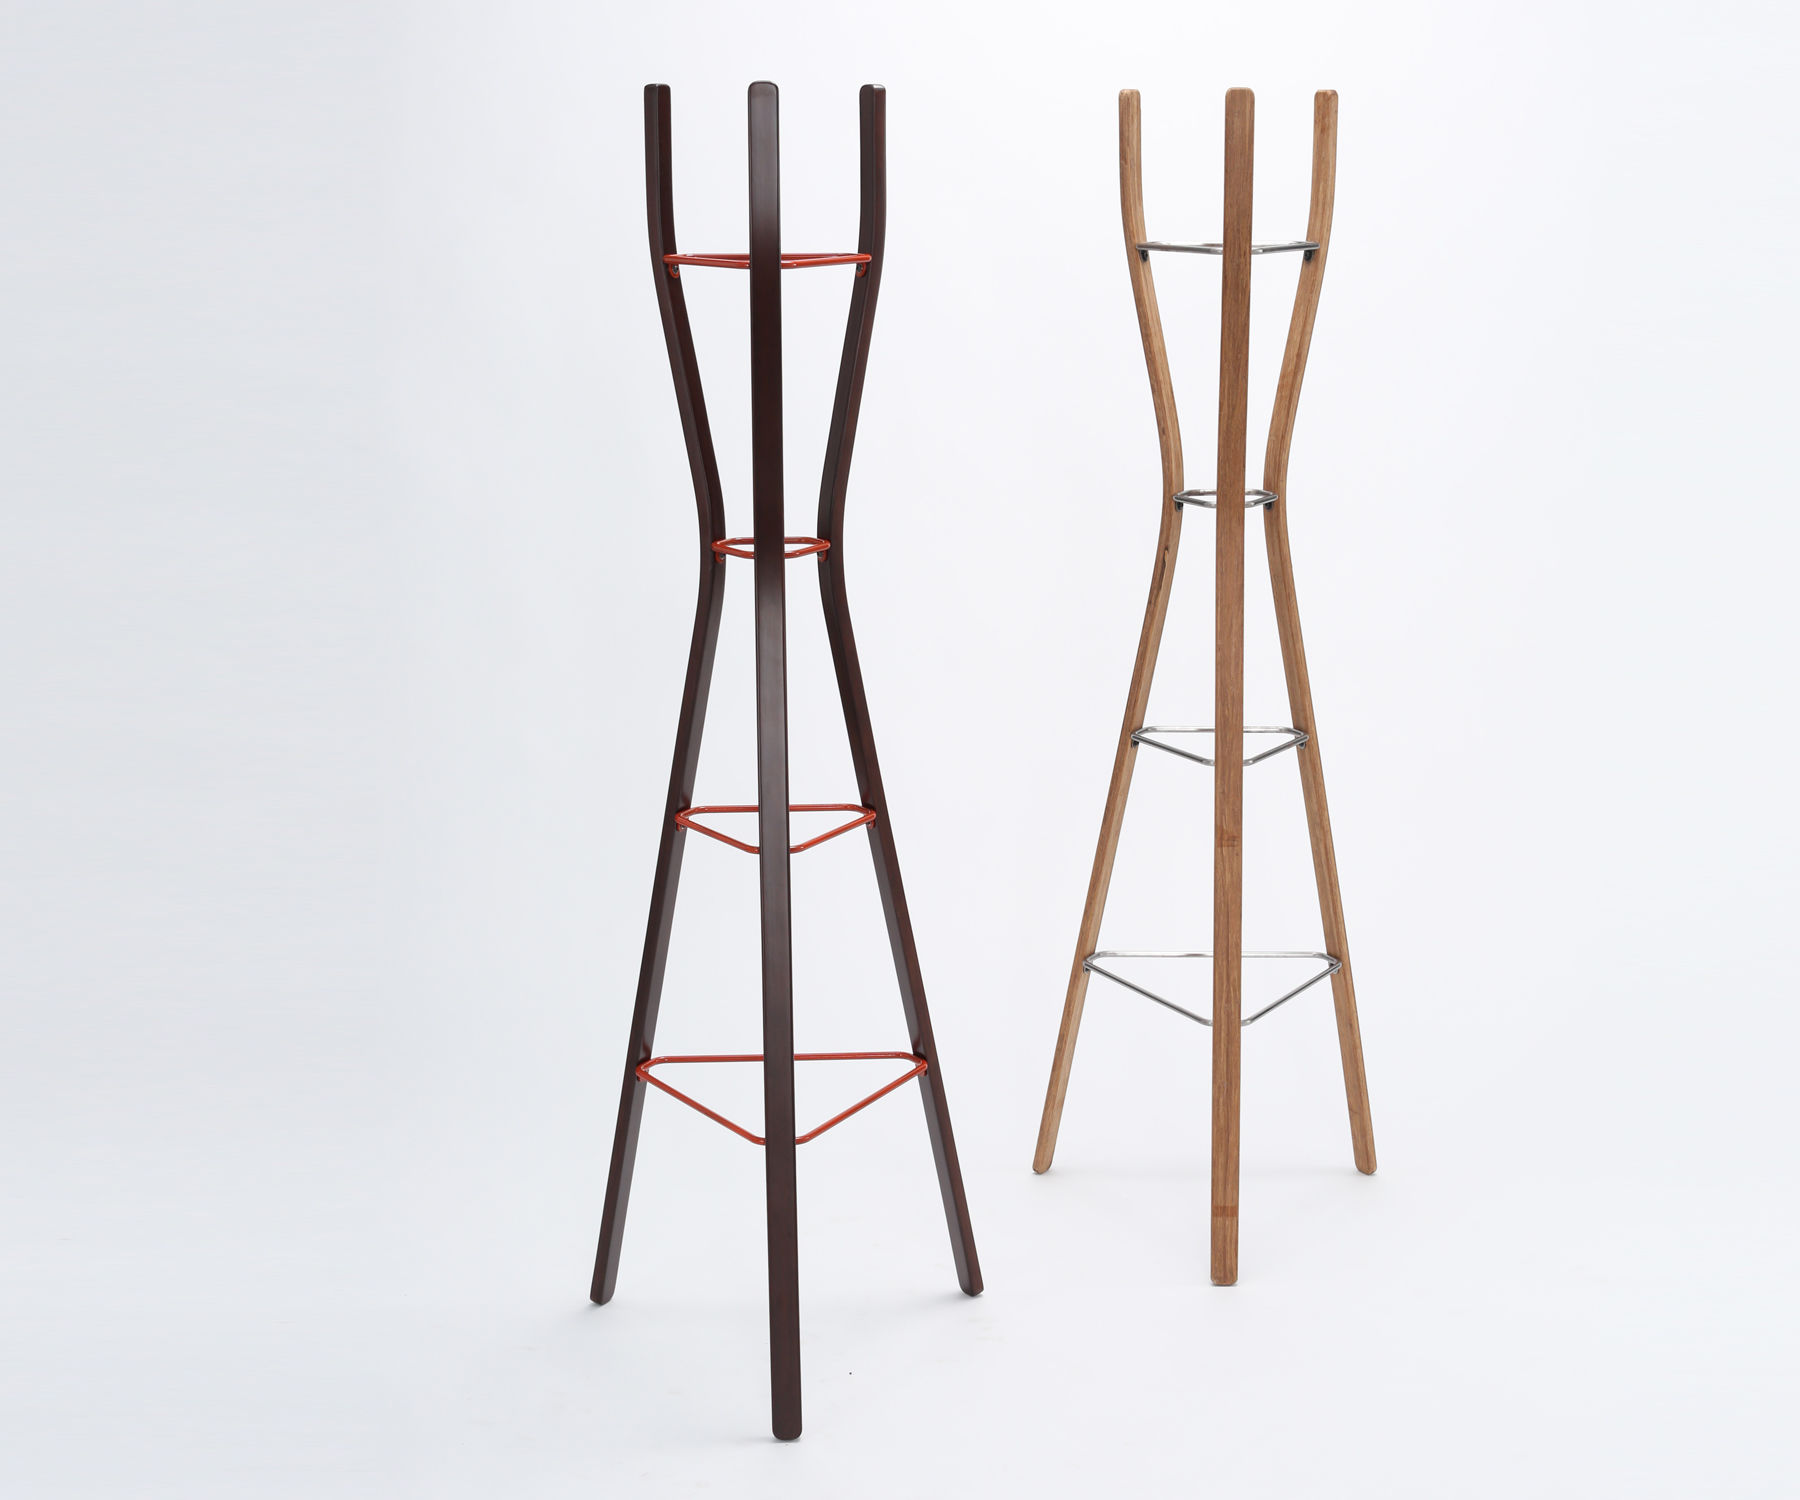 Sutro Tower Coat Rack Process From Manufacturing to Delivery